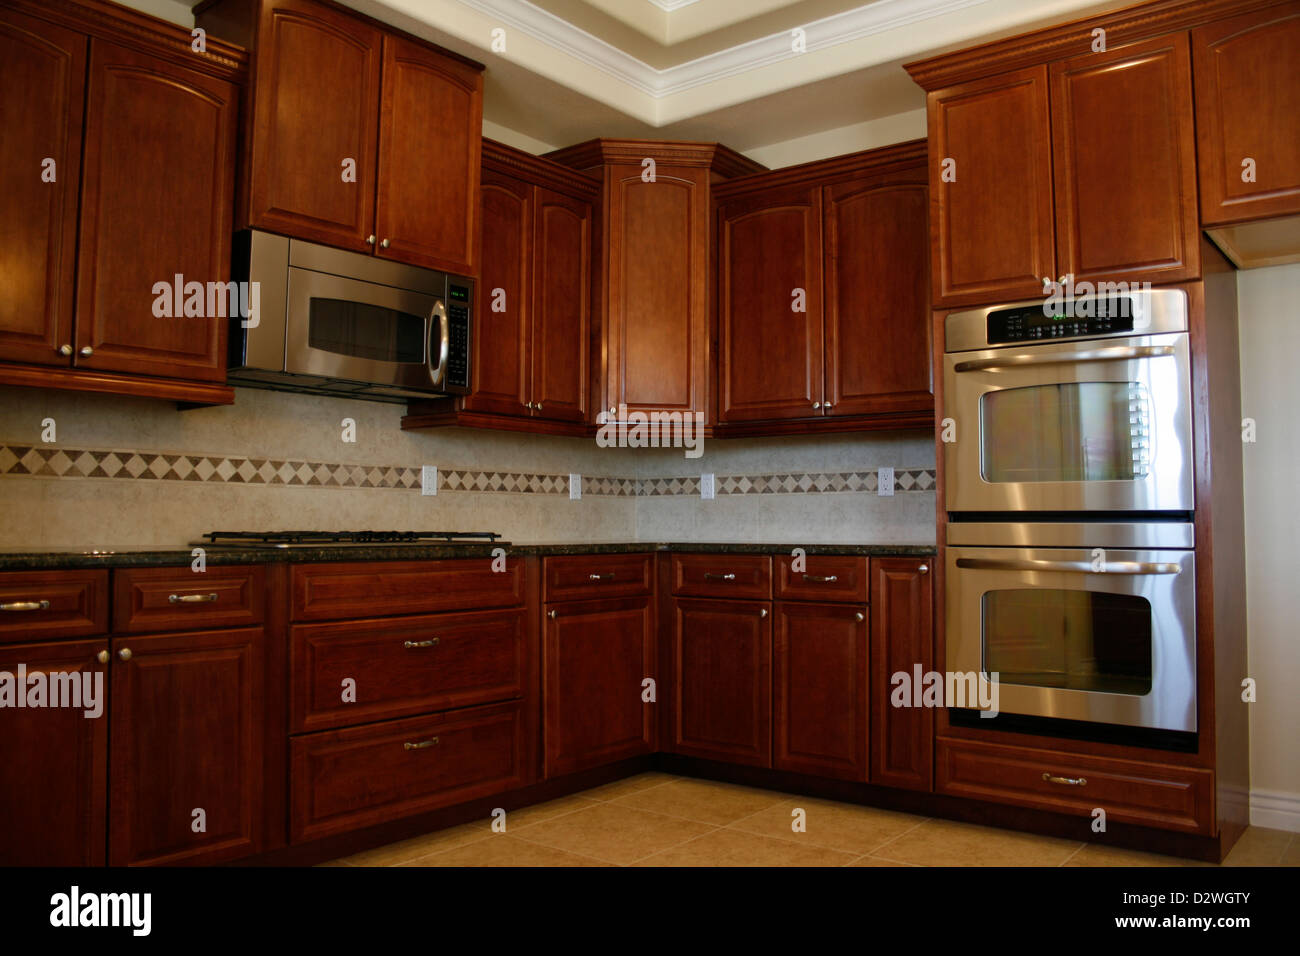 Kitchen cabinets with stainless steel appliances Stock Photo ...